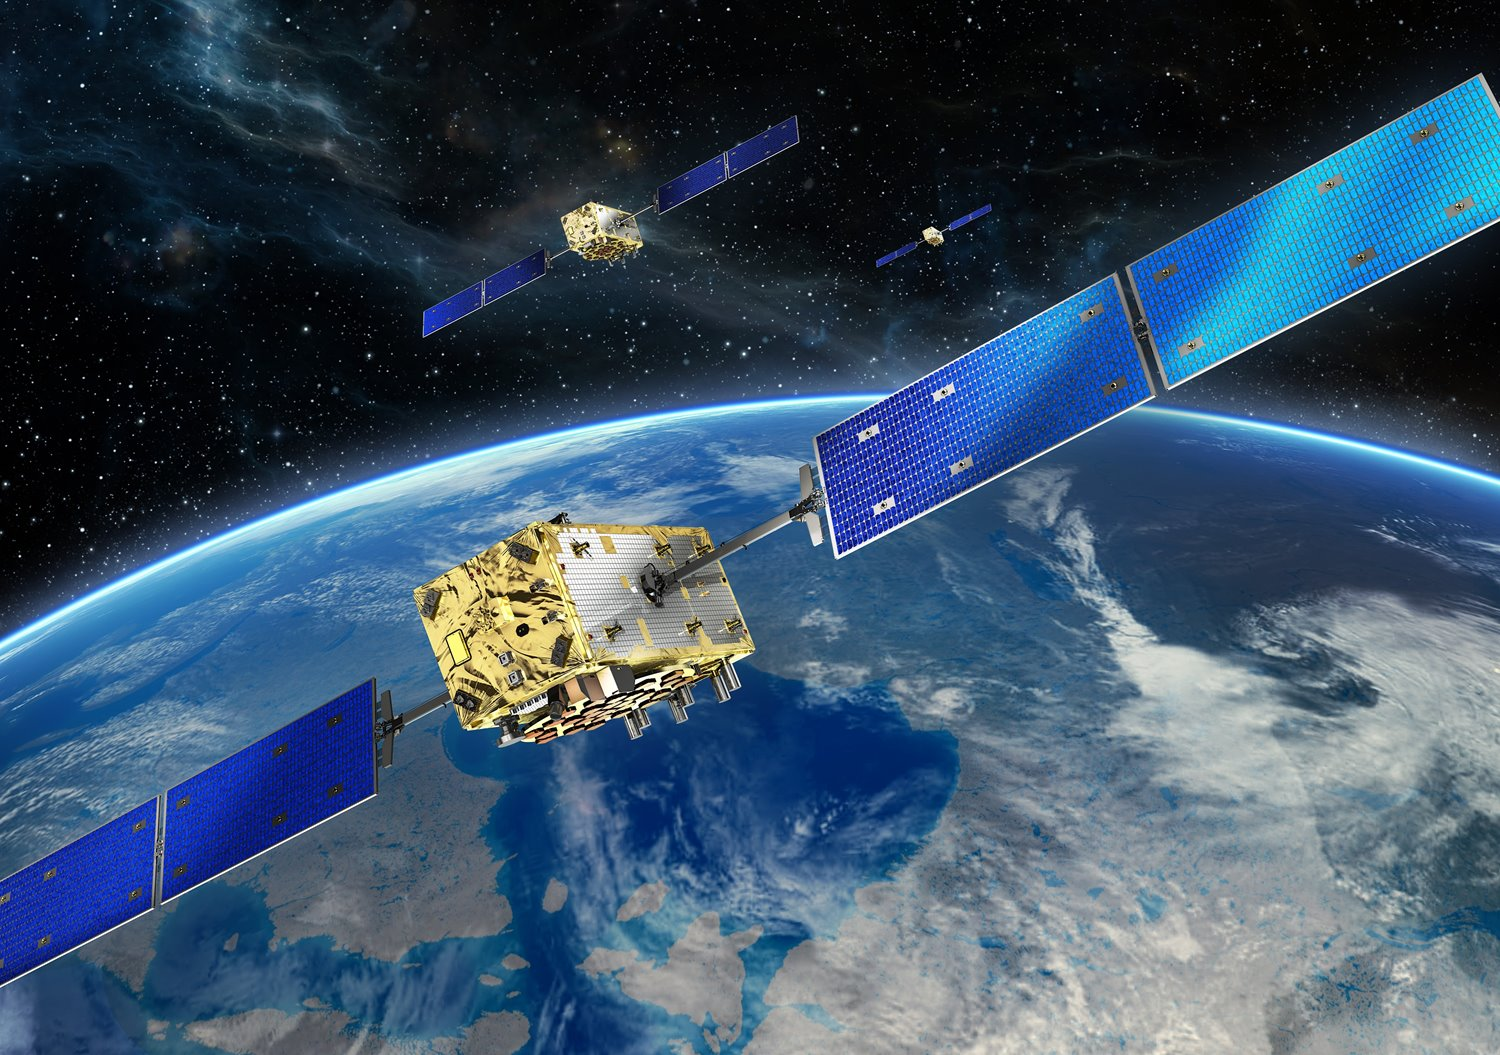 OHB and SSTL selected for the construction of 14 Galileo navigation satellites